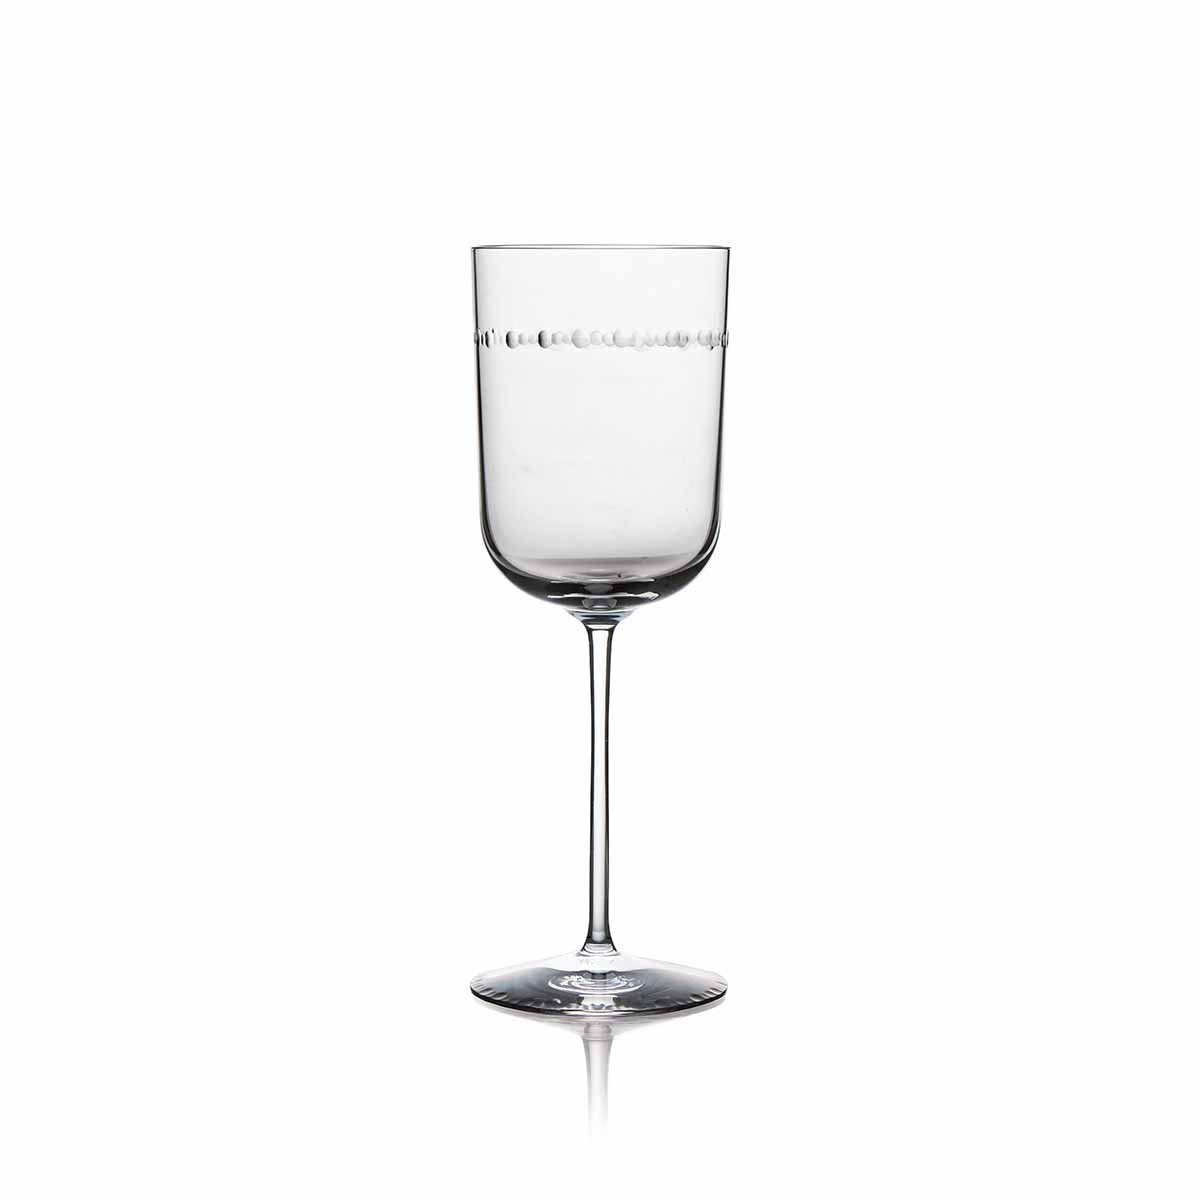 Michael Aram, Hammertone Crystal Wine Glass, Pair